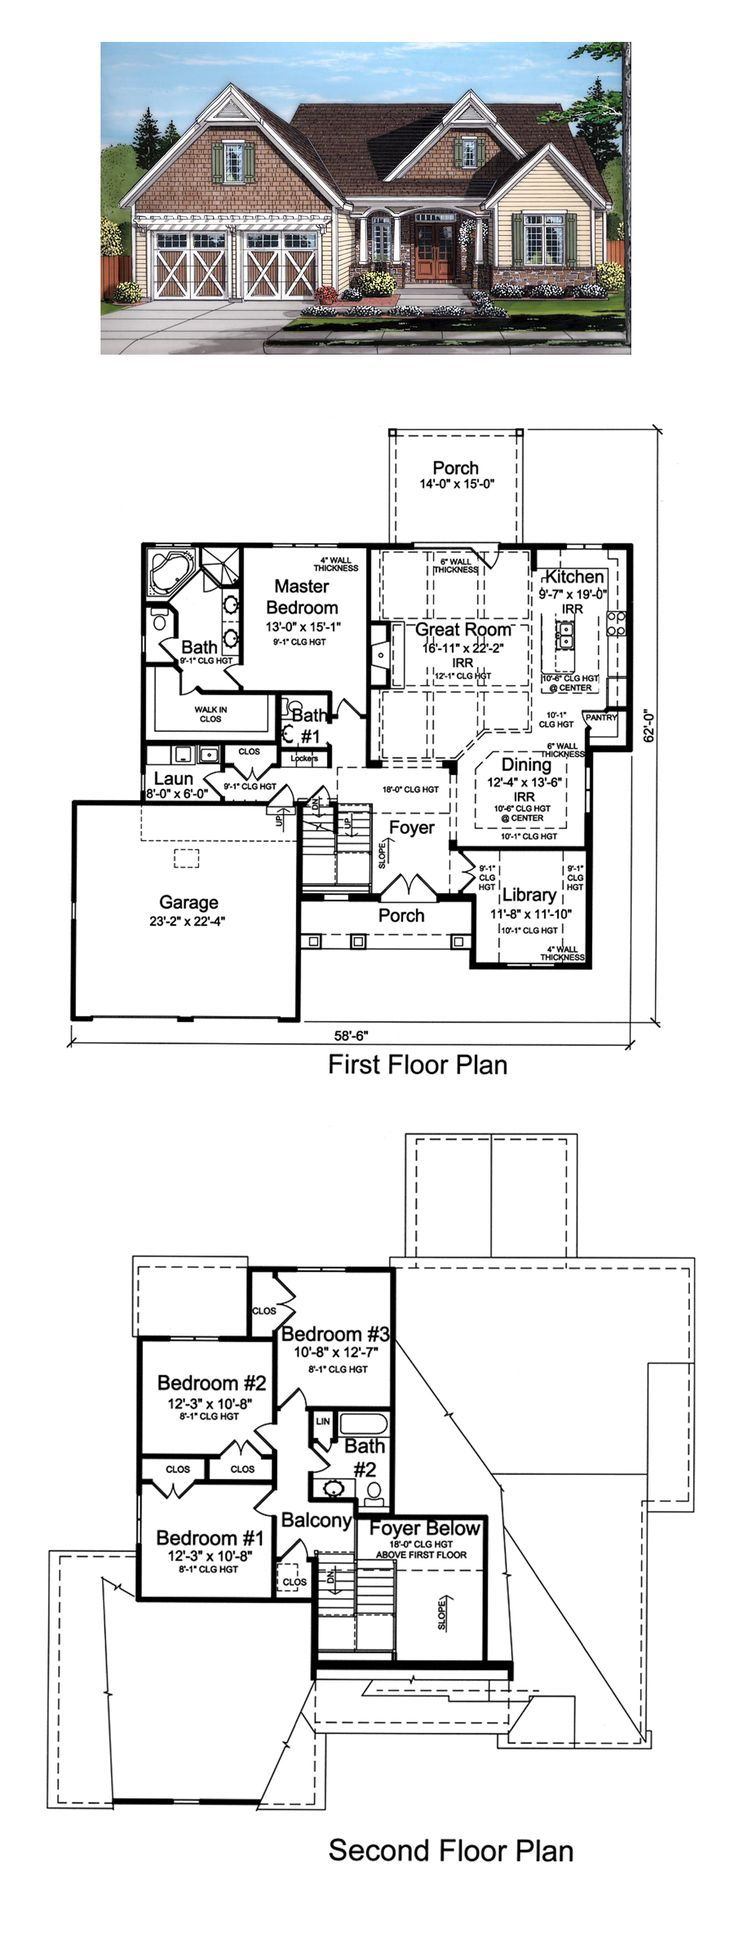 10 images about New House Plans on Pinterest House plans